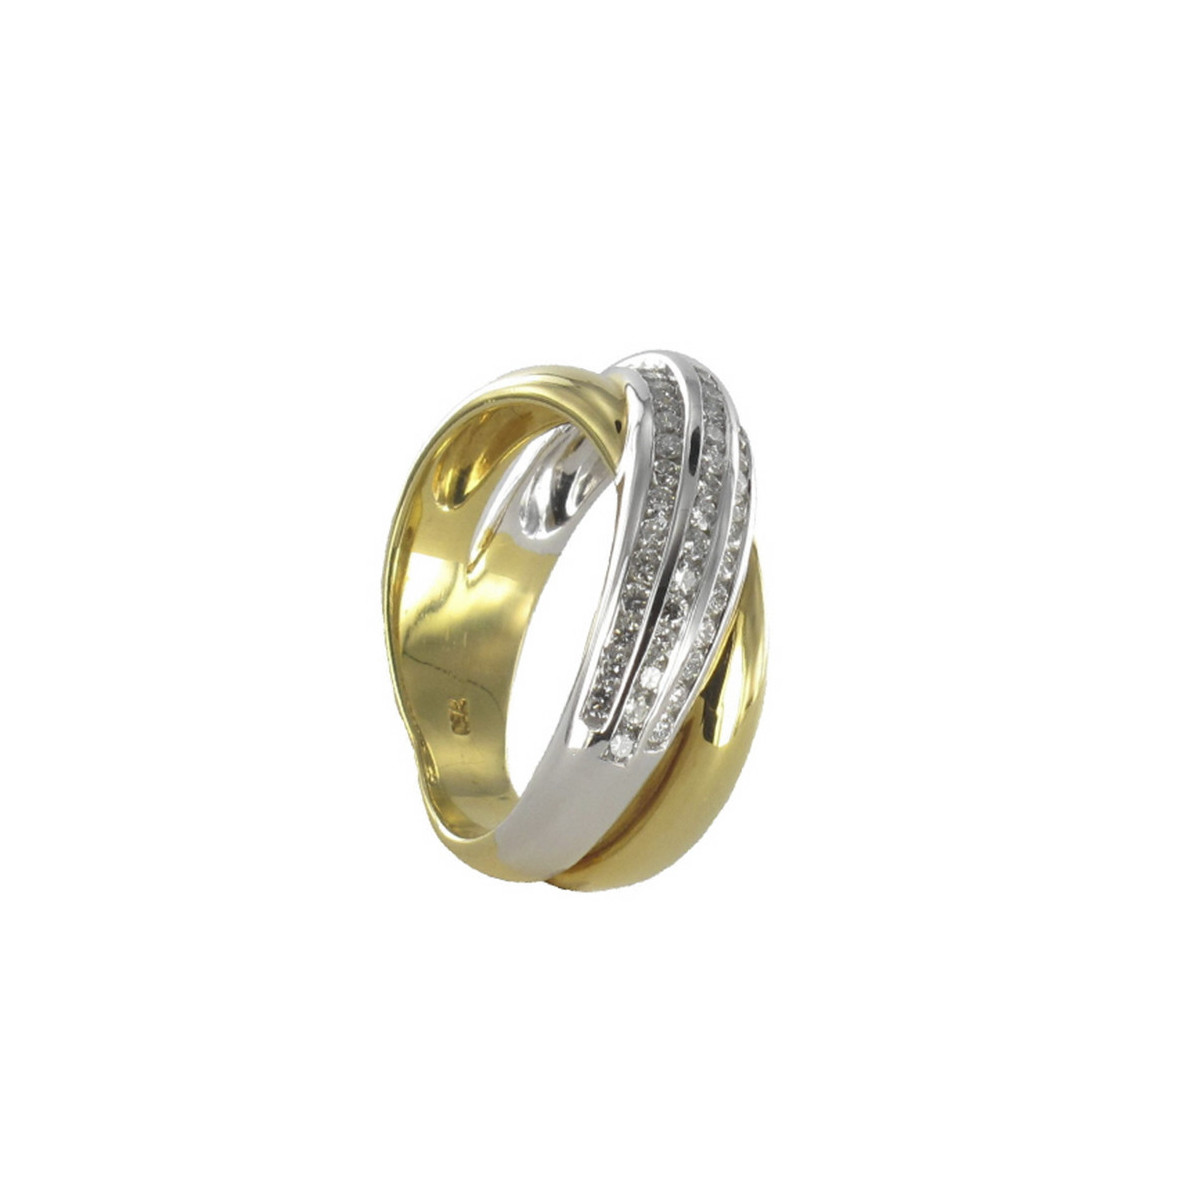 GOLD AND DIAMONDS RING